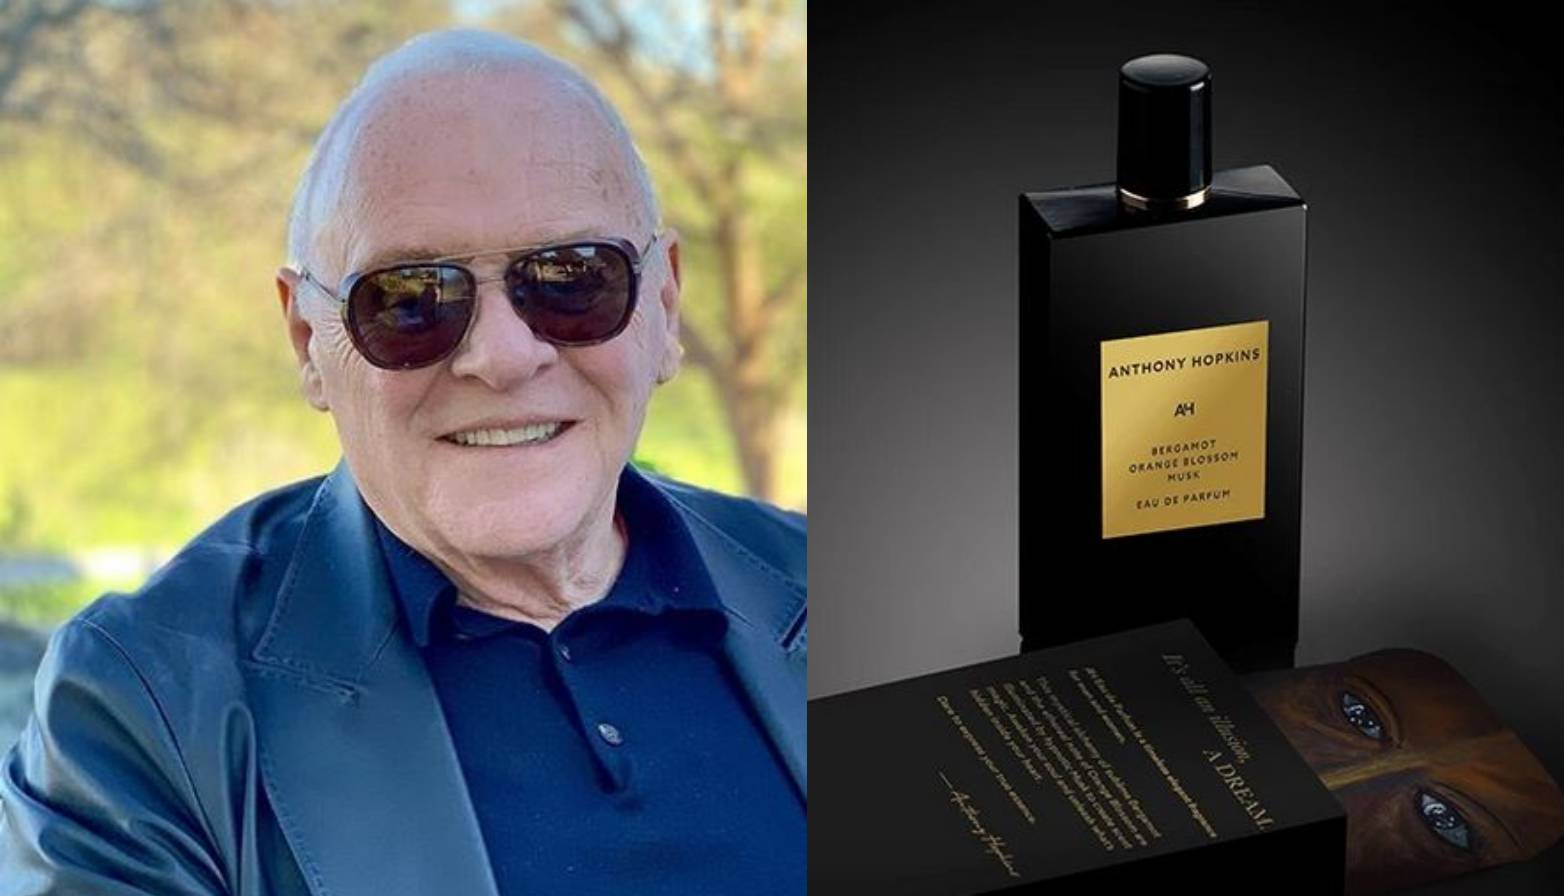 Anthony Hopkins ima beauty vijesti - potpisuje svoj parfem